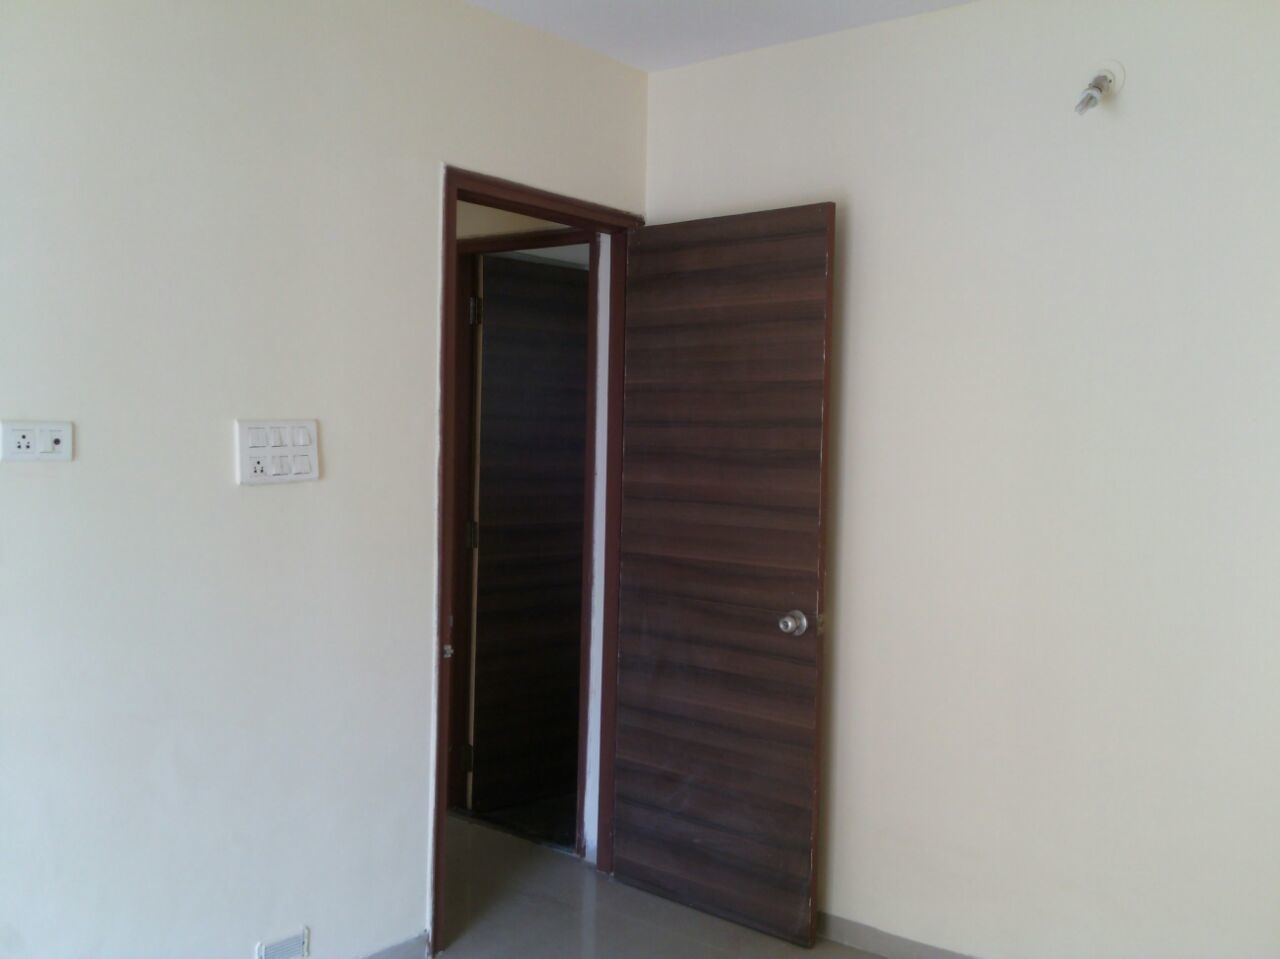 1065 sq ft 2BHK 2BHK+2T (1,065 sq ft) Property By Bhoomi Enterprises In Project, Kharghar